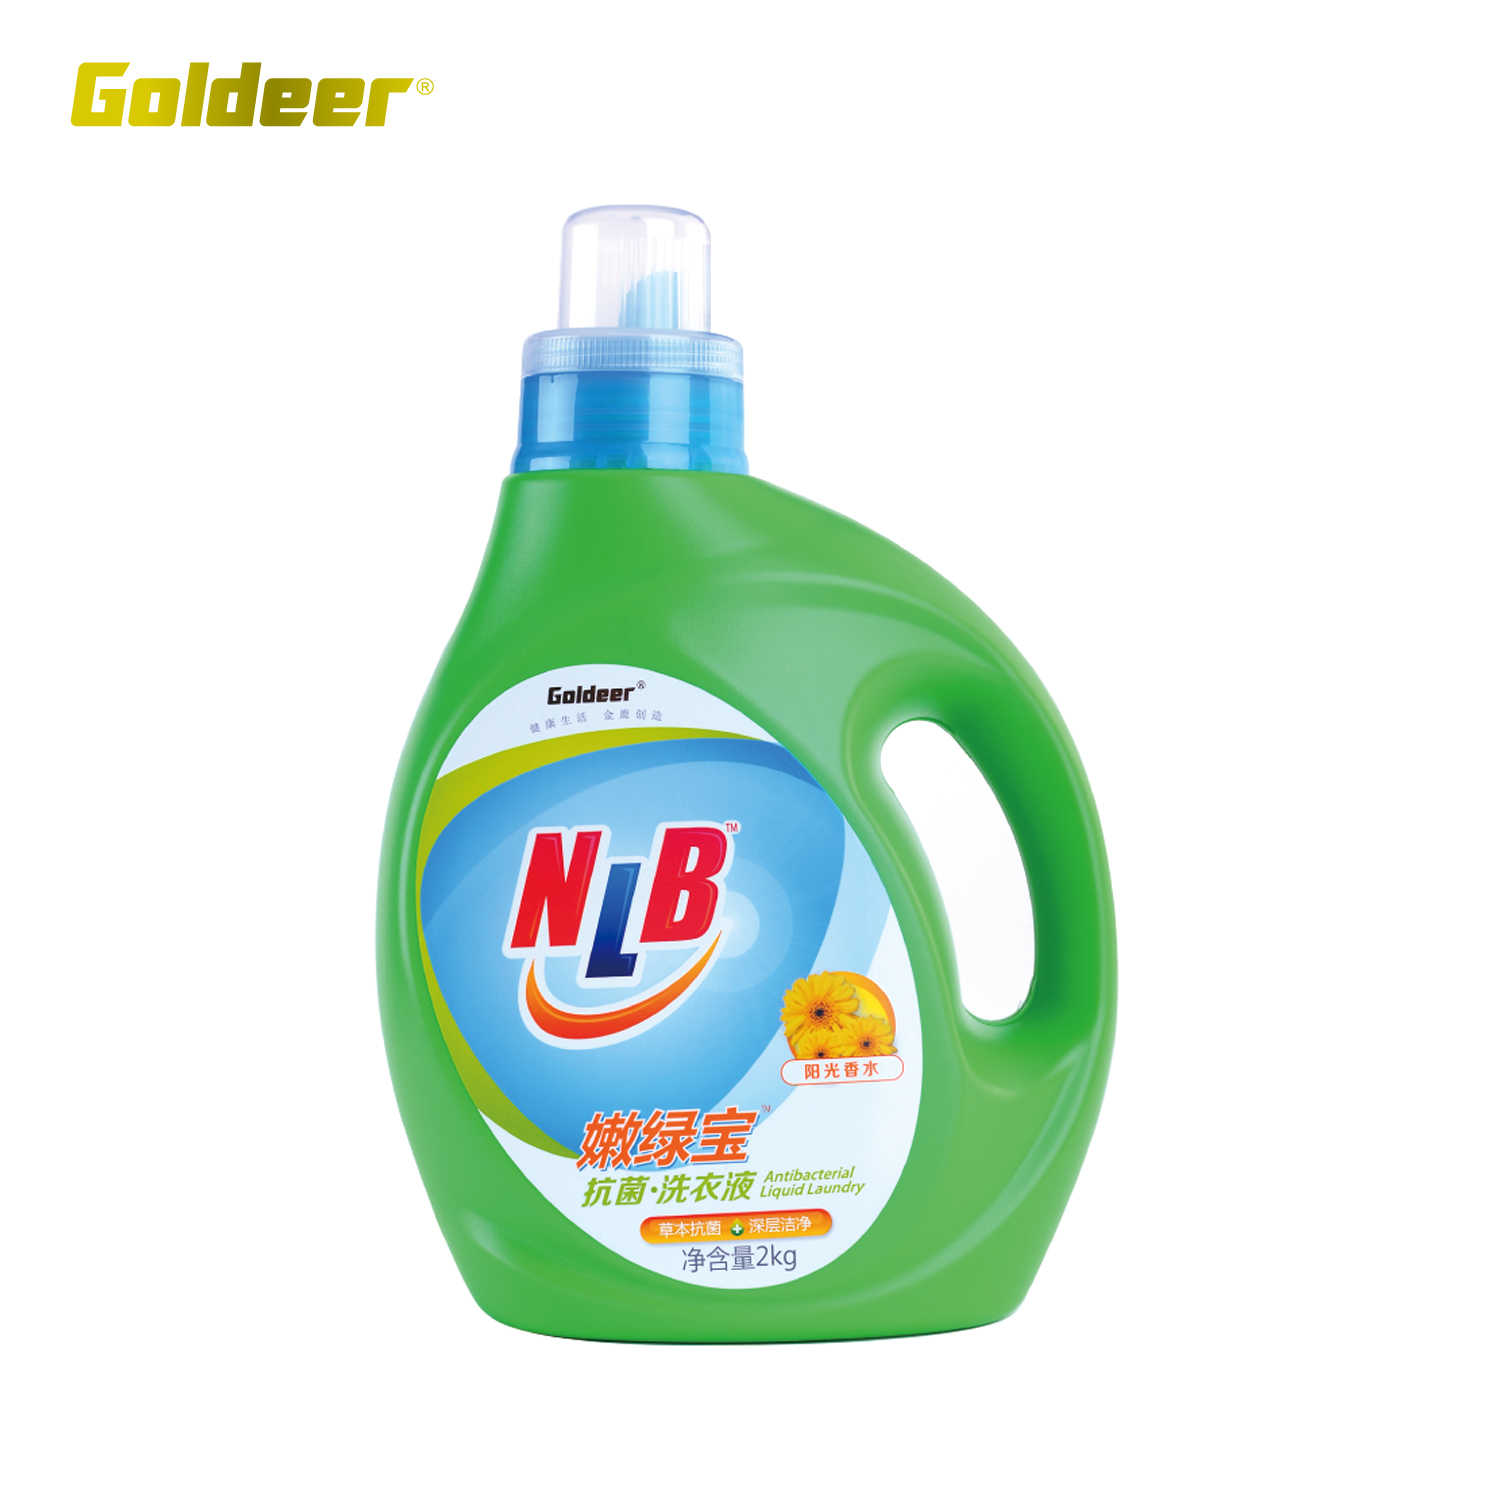 Laundry detergent liquid, hand soap liquid, dish washing liquid